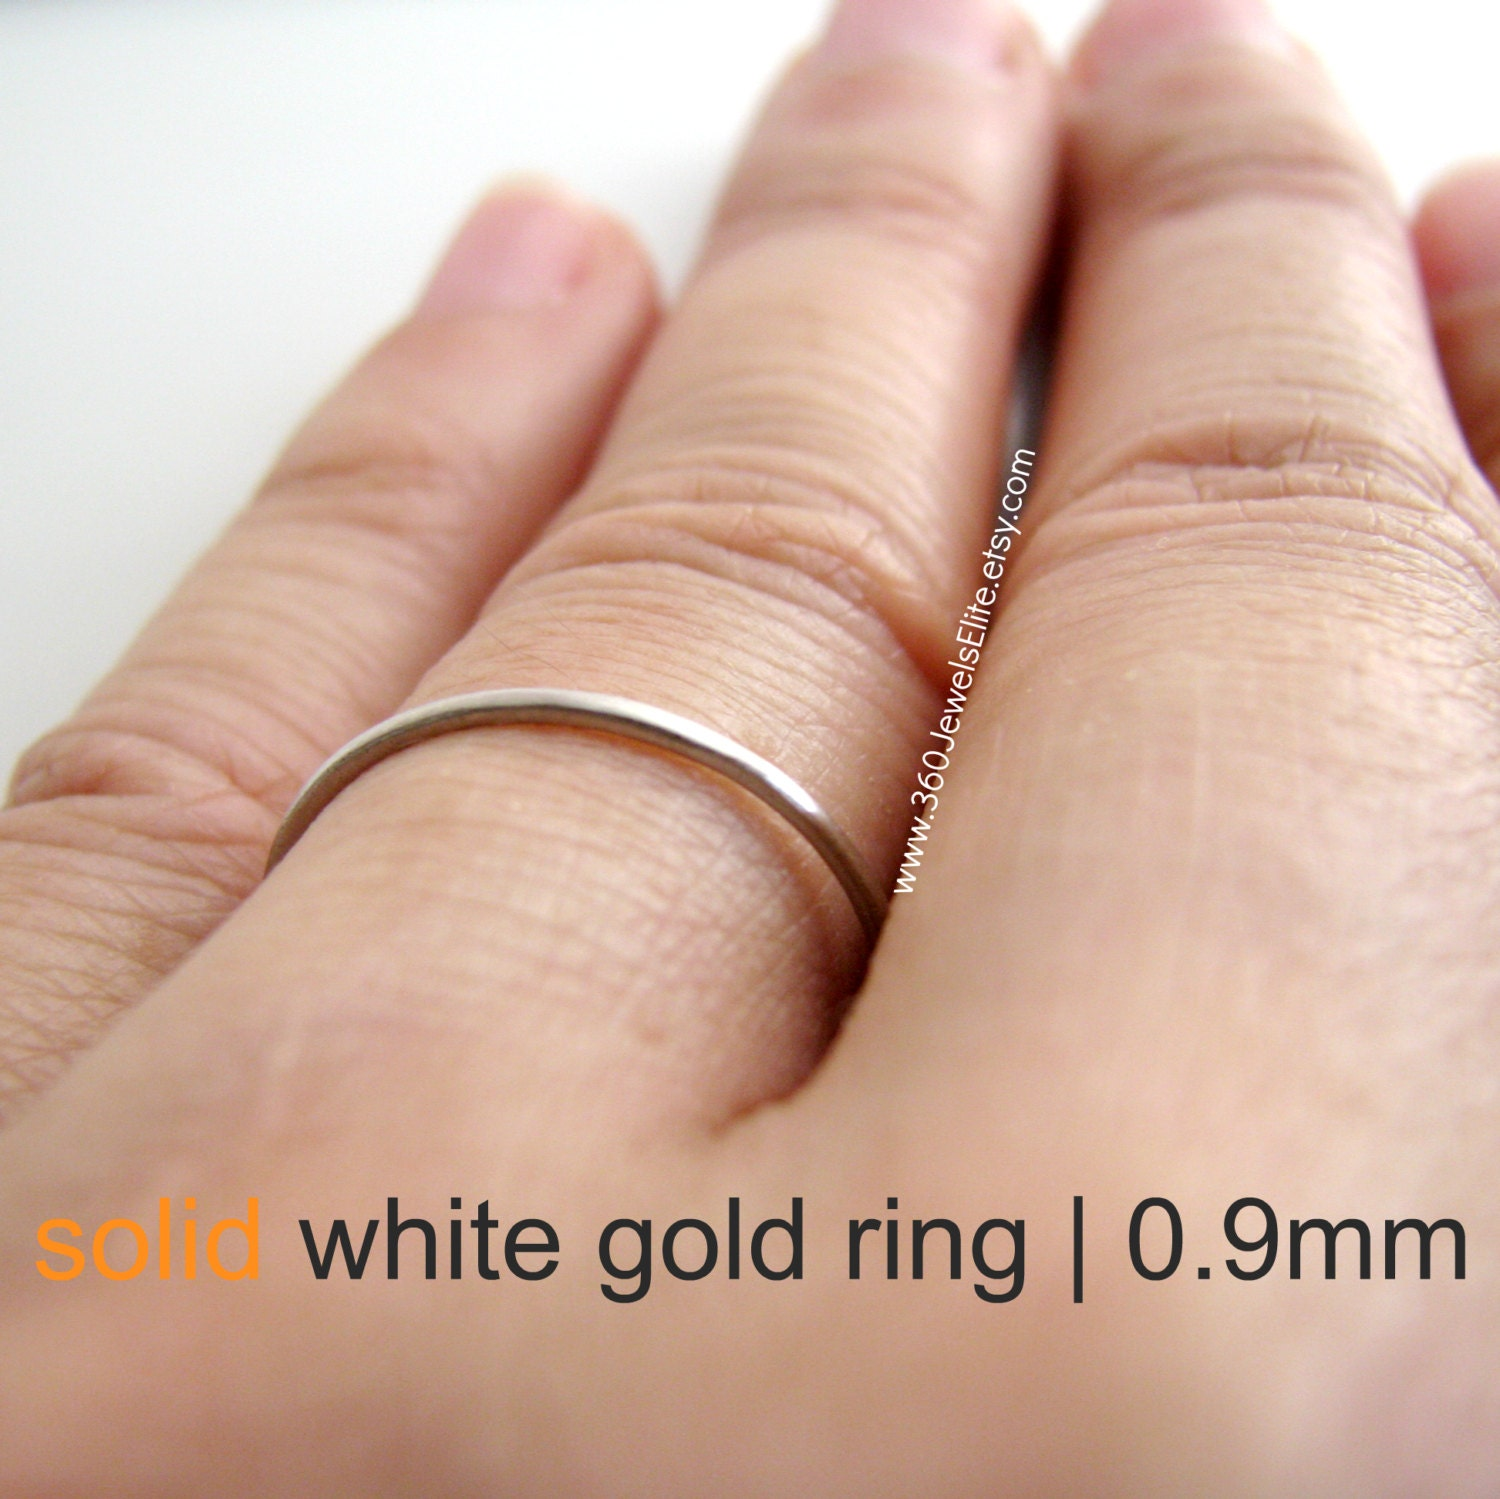 details thin spacer bands ori stackable curved ringscollection band rings wedding gold